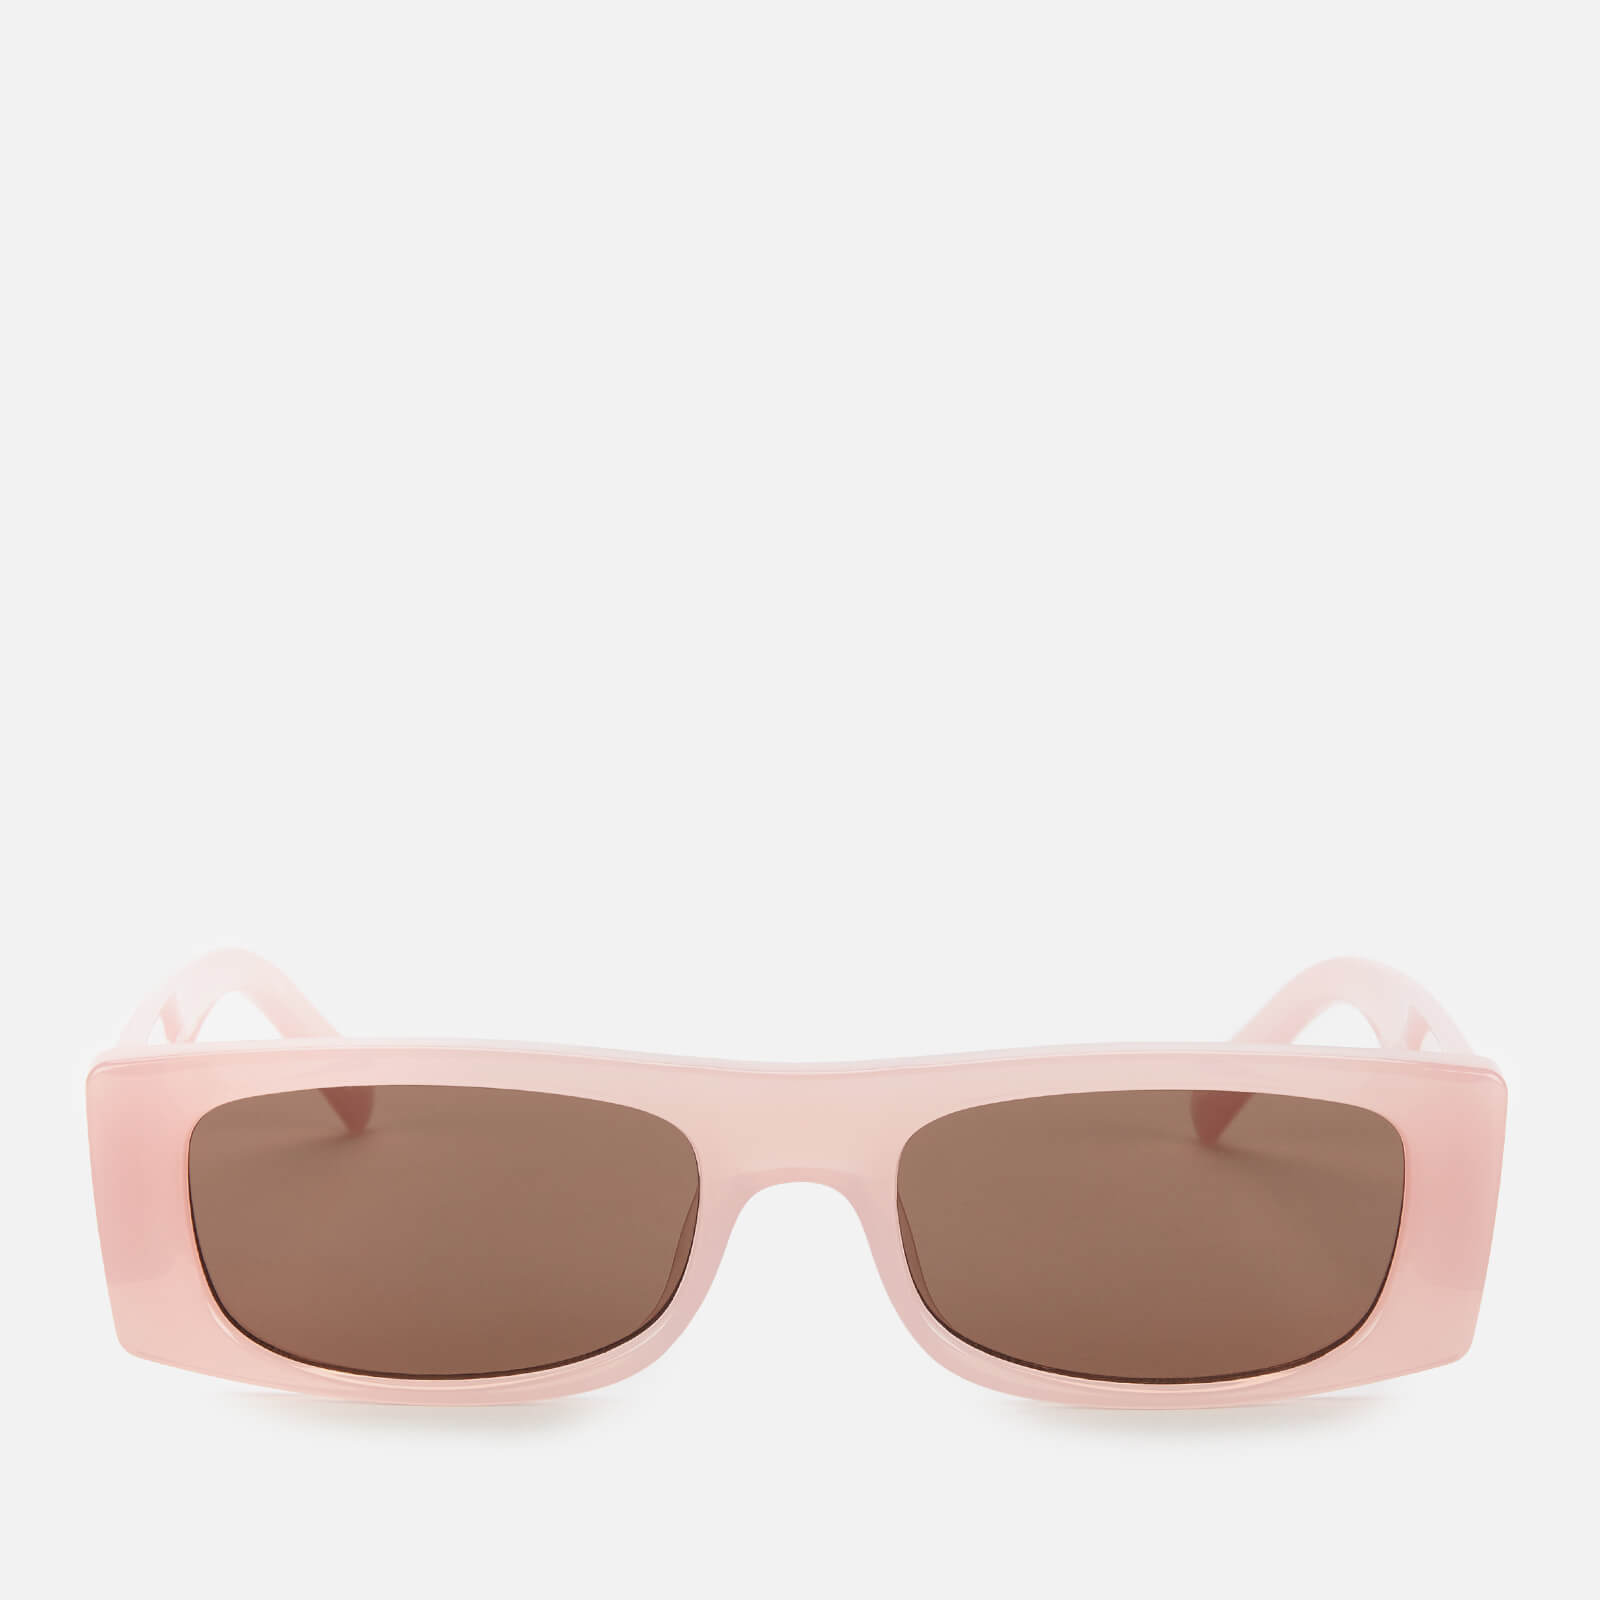 Le Specs Women's Recovery Rectangular Sunglasses - Rosewater